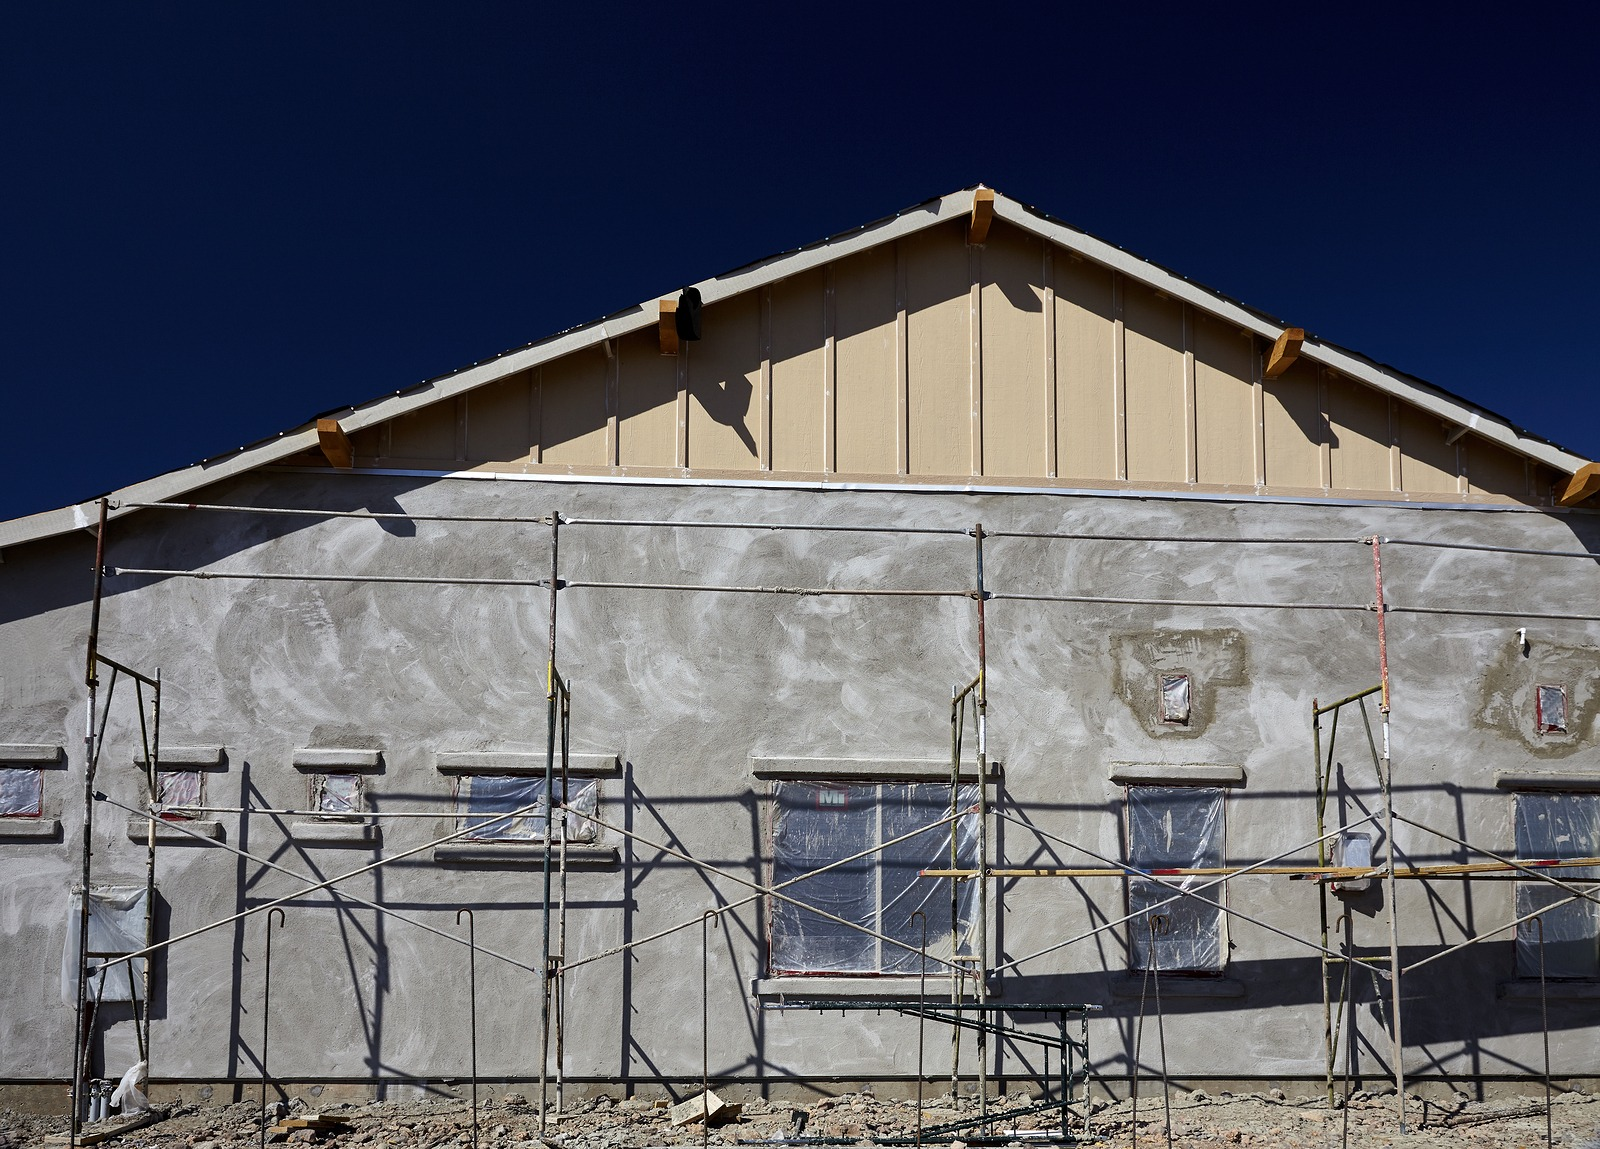 bigstock-New-Home-Construction-Stucco-P-136103216